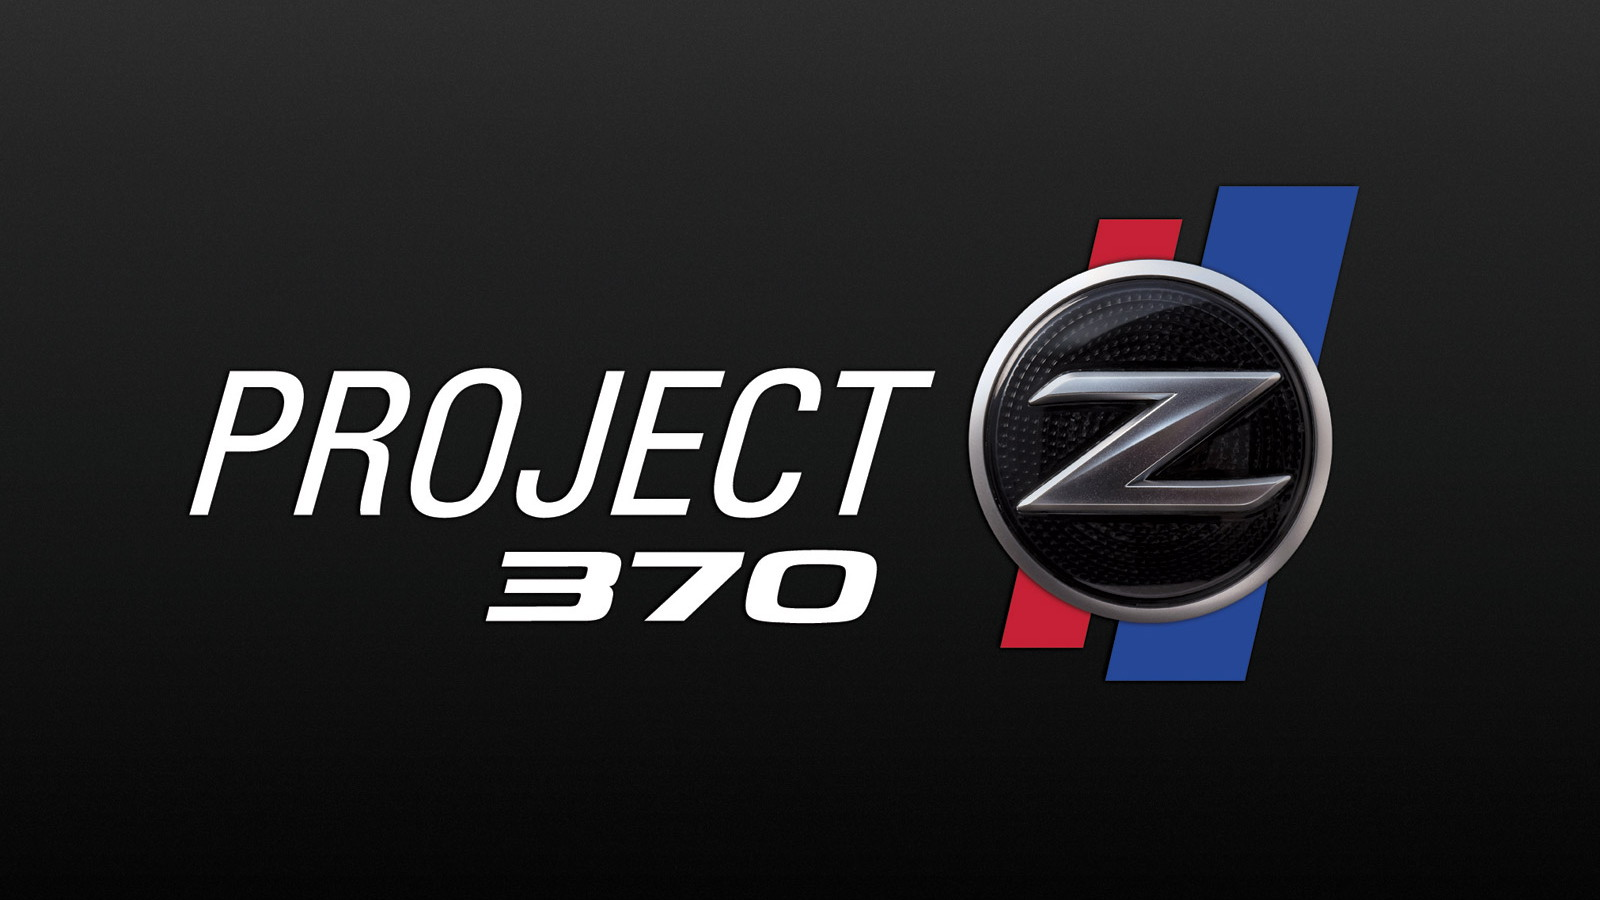 Project 370Z